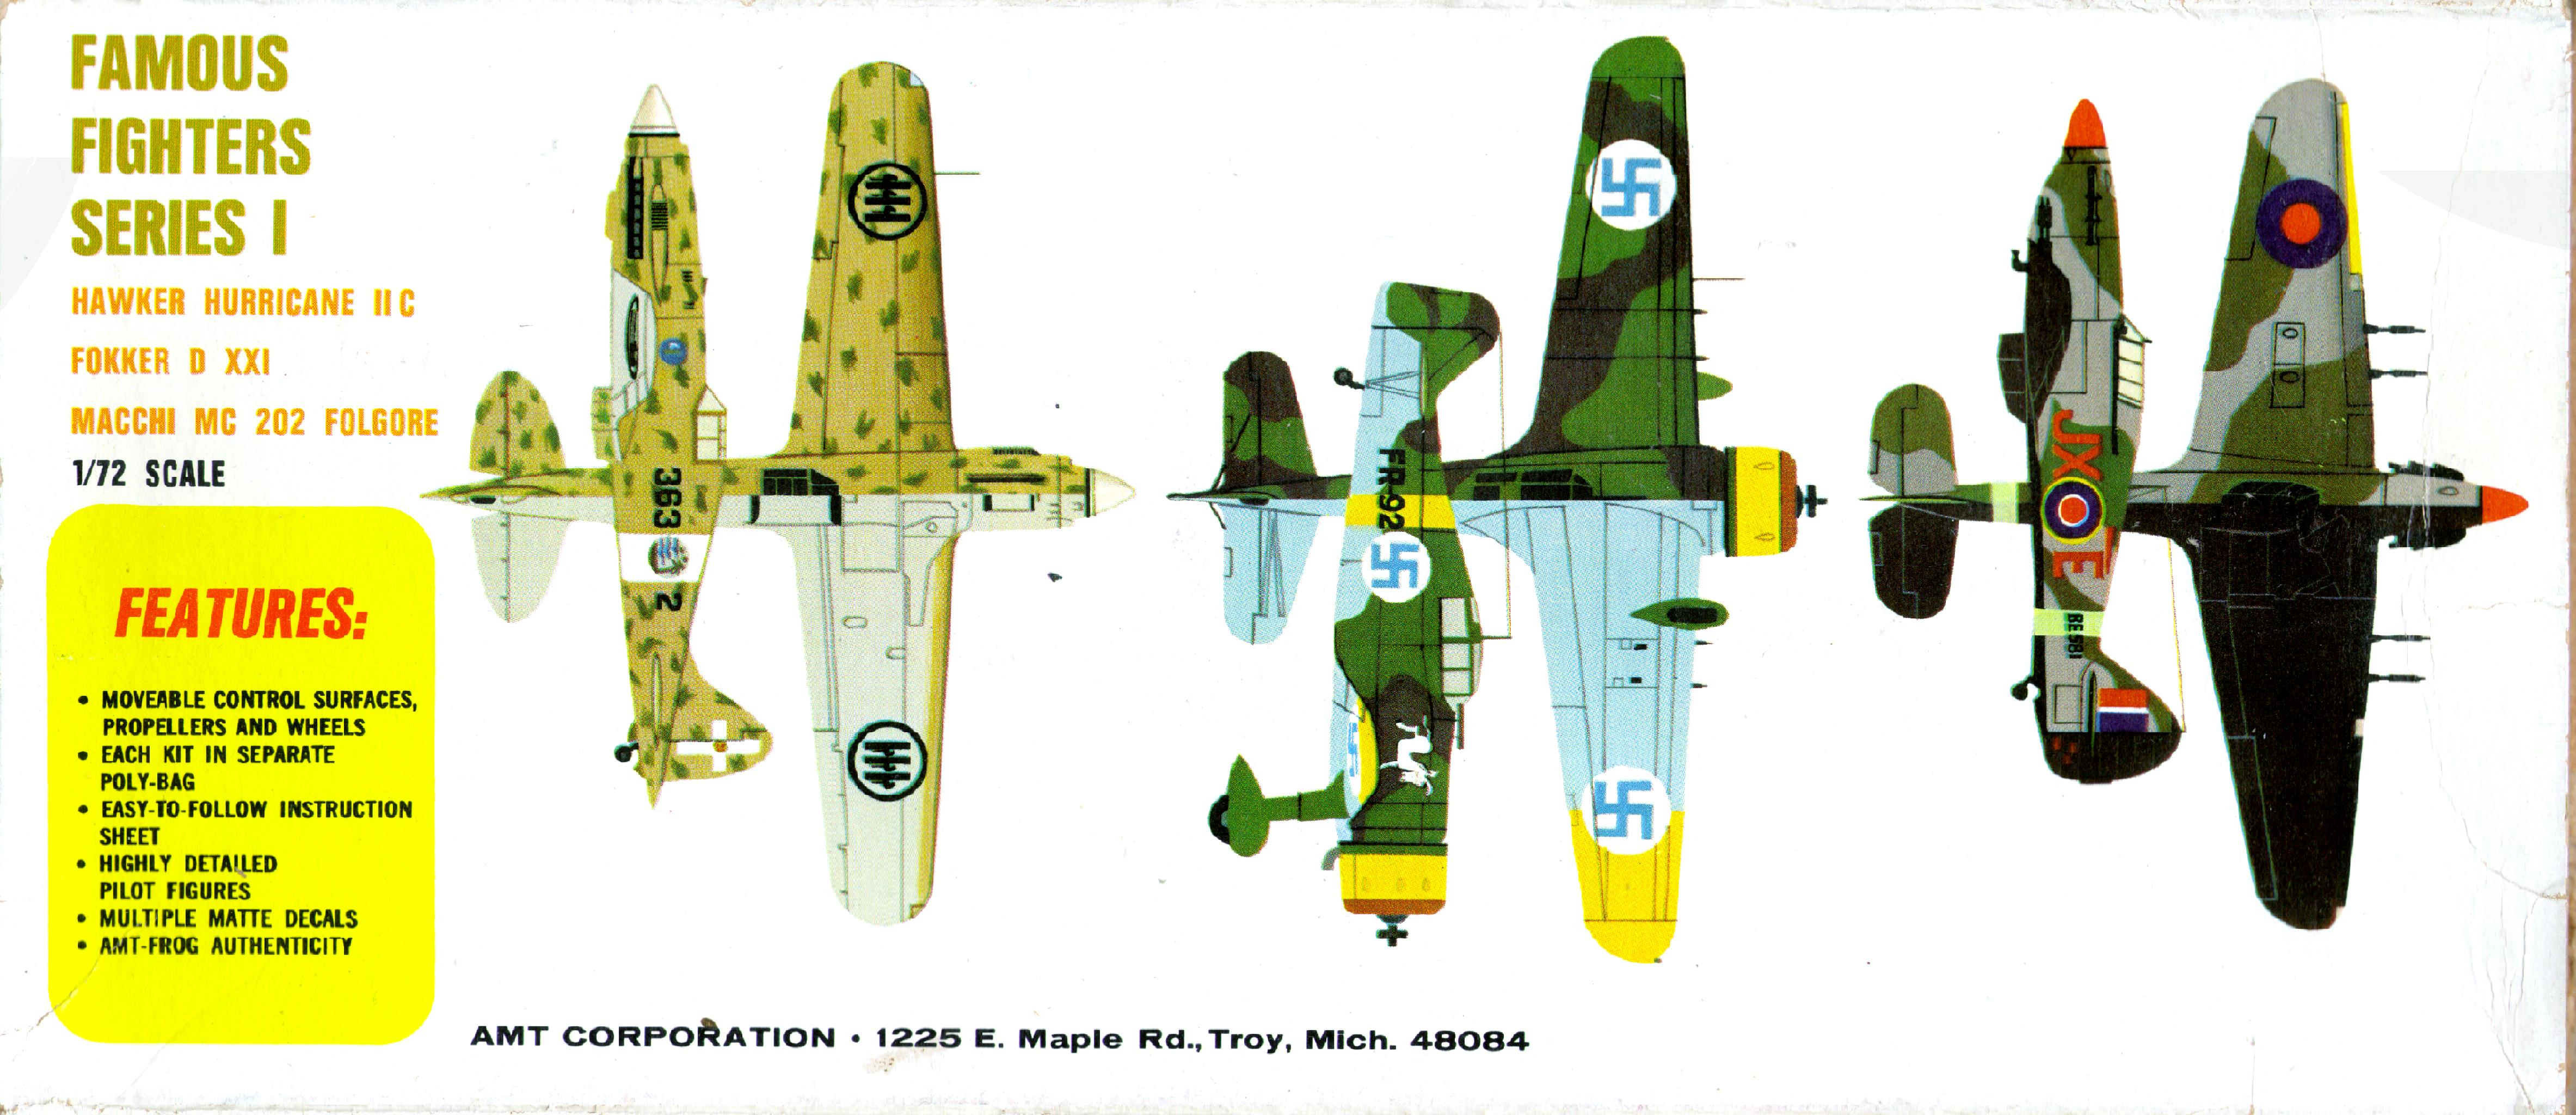 Схемы окраски и маркировки amt 3955-130 Fokker D21, Famous Fighters Series I, American Metal Toys, 1969,1